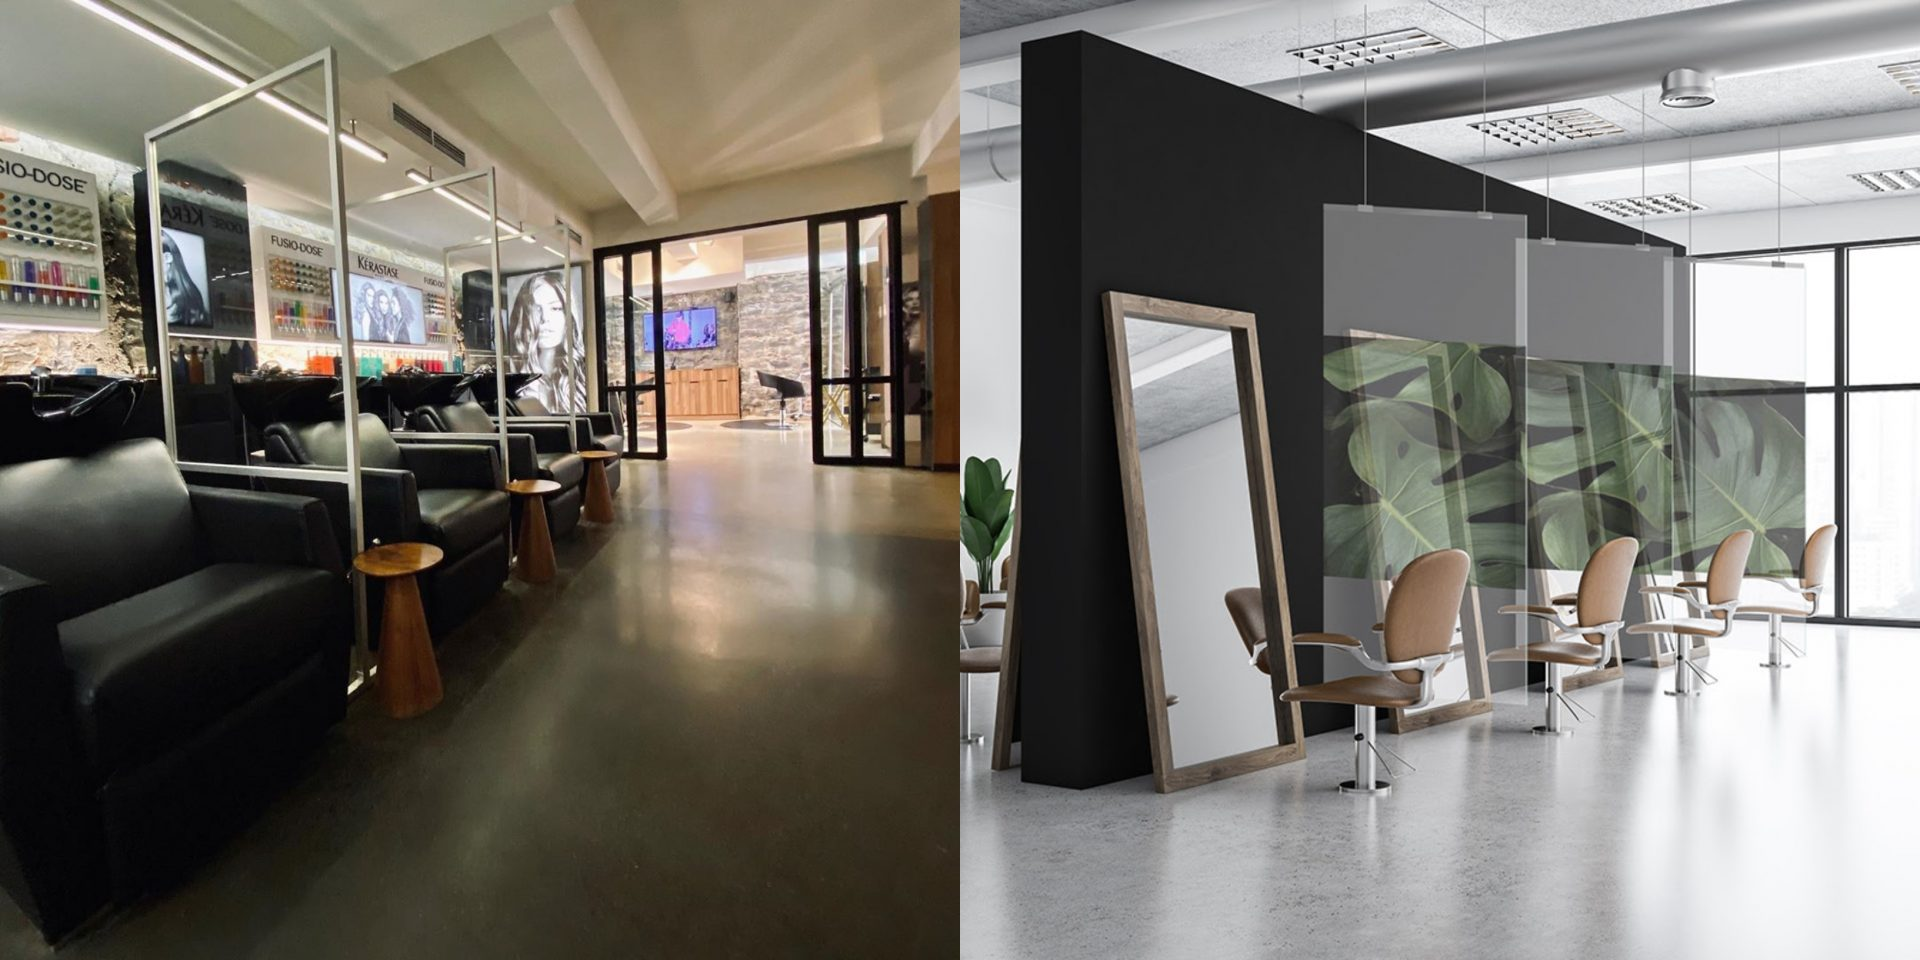 Le Plexiglas L Avenir Des Salons De Beauté Post Covid Nightlife